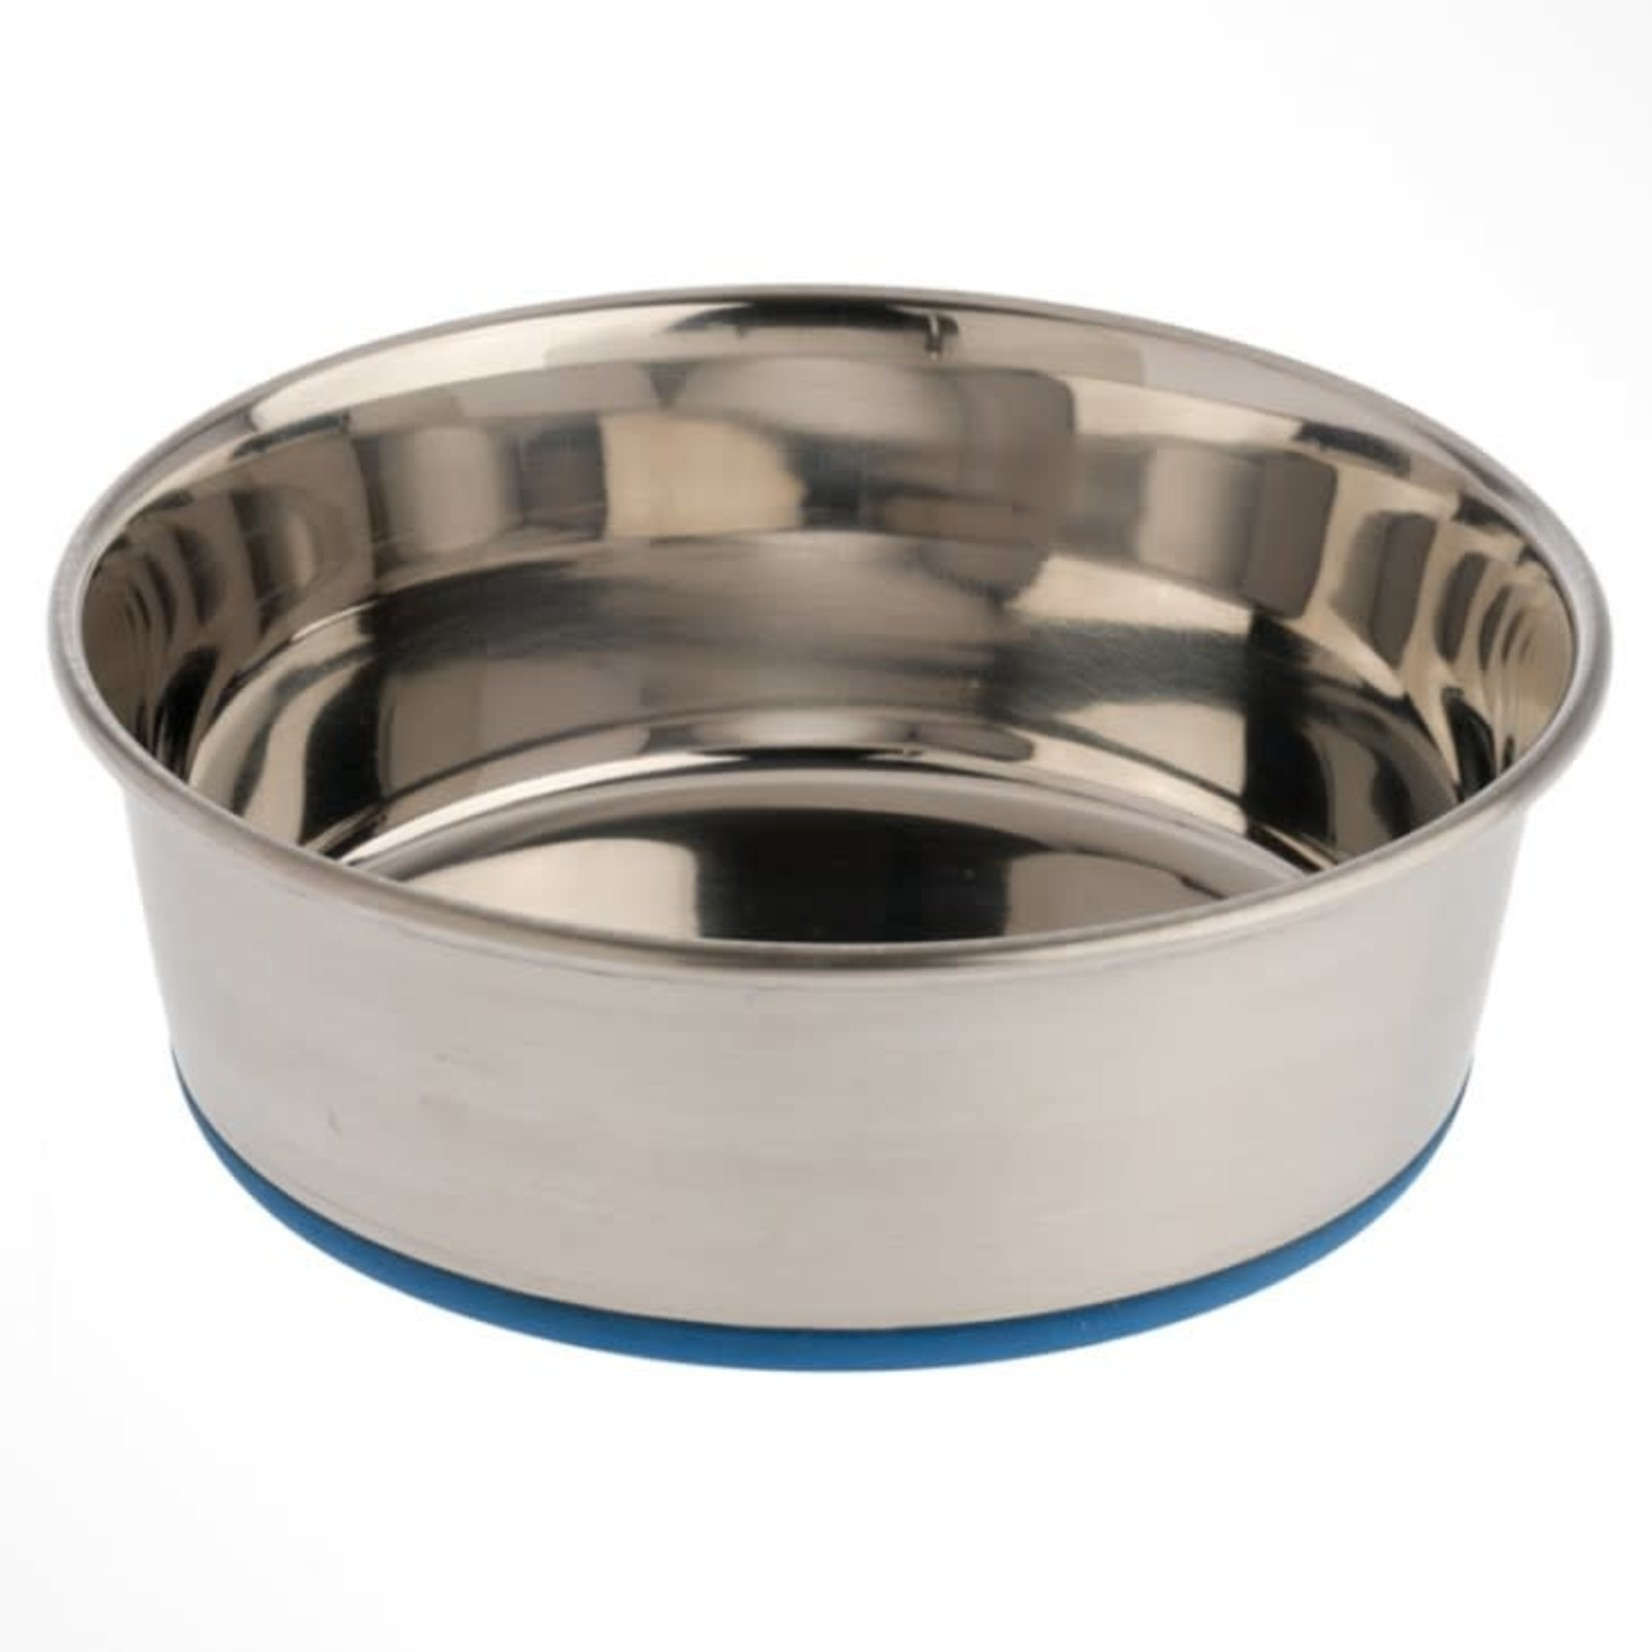 Our Pets Company Durapet Stainless Steel Bowl .75 Pint